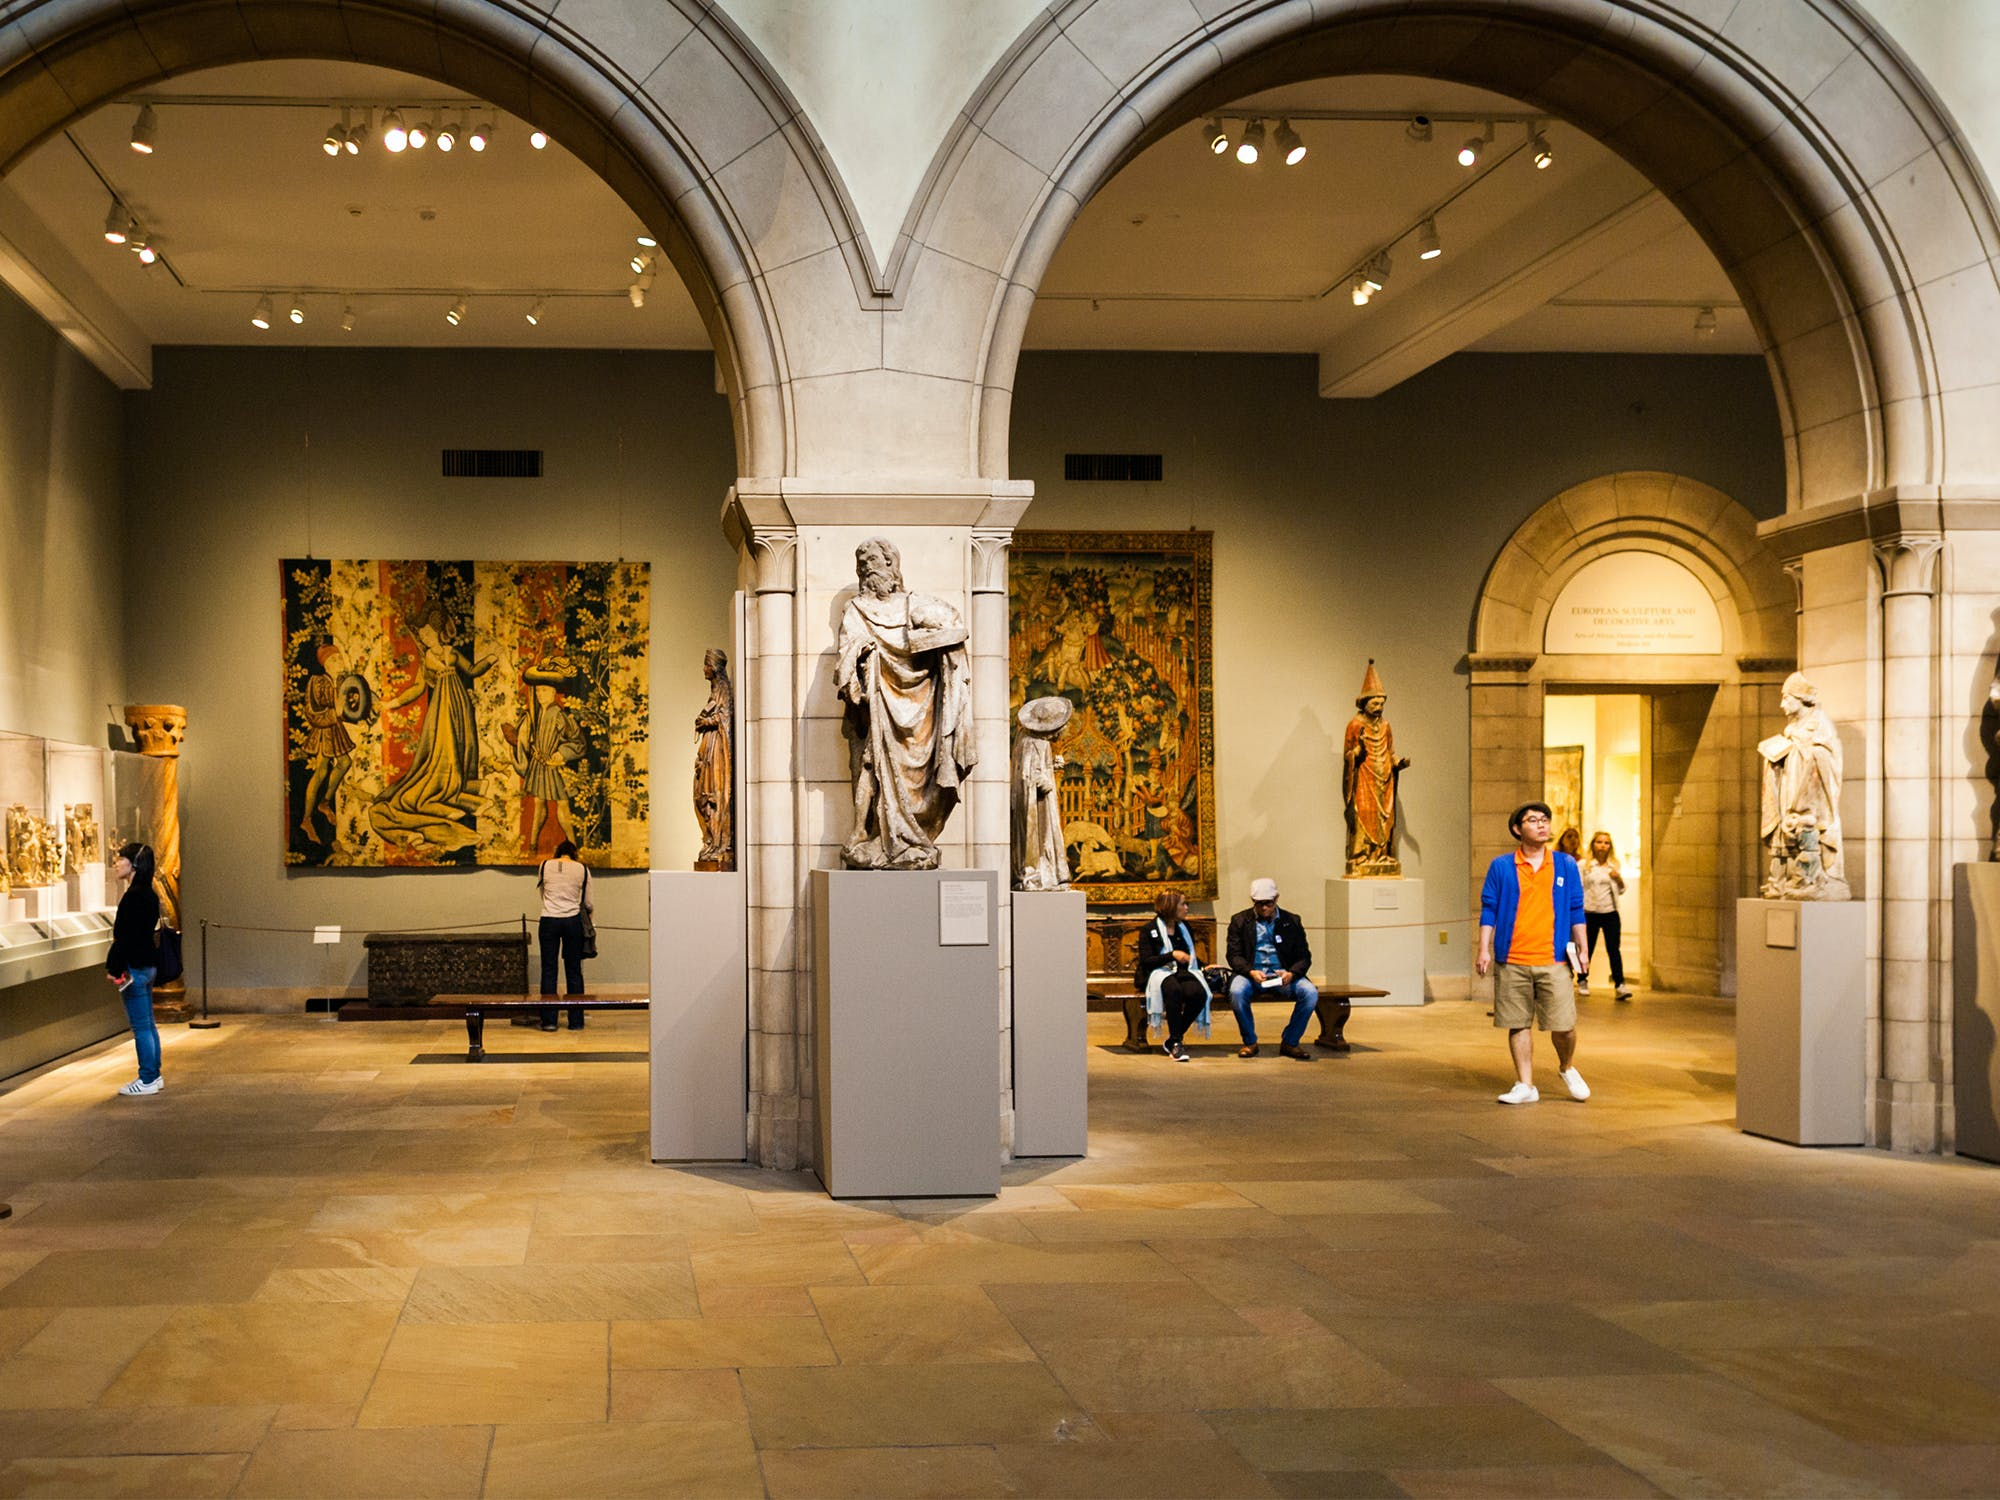 Art Museums: The Met, MoMA, Whitney & Guggenheim